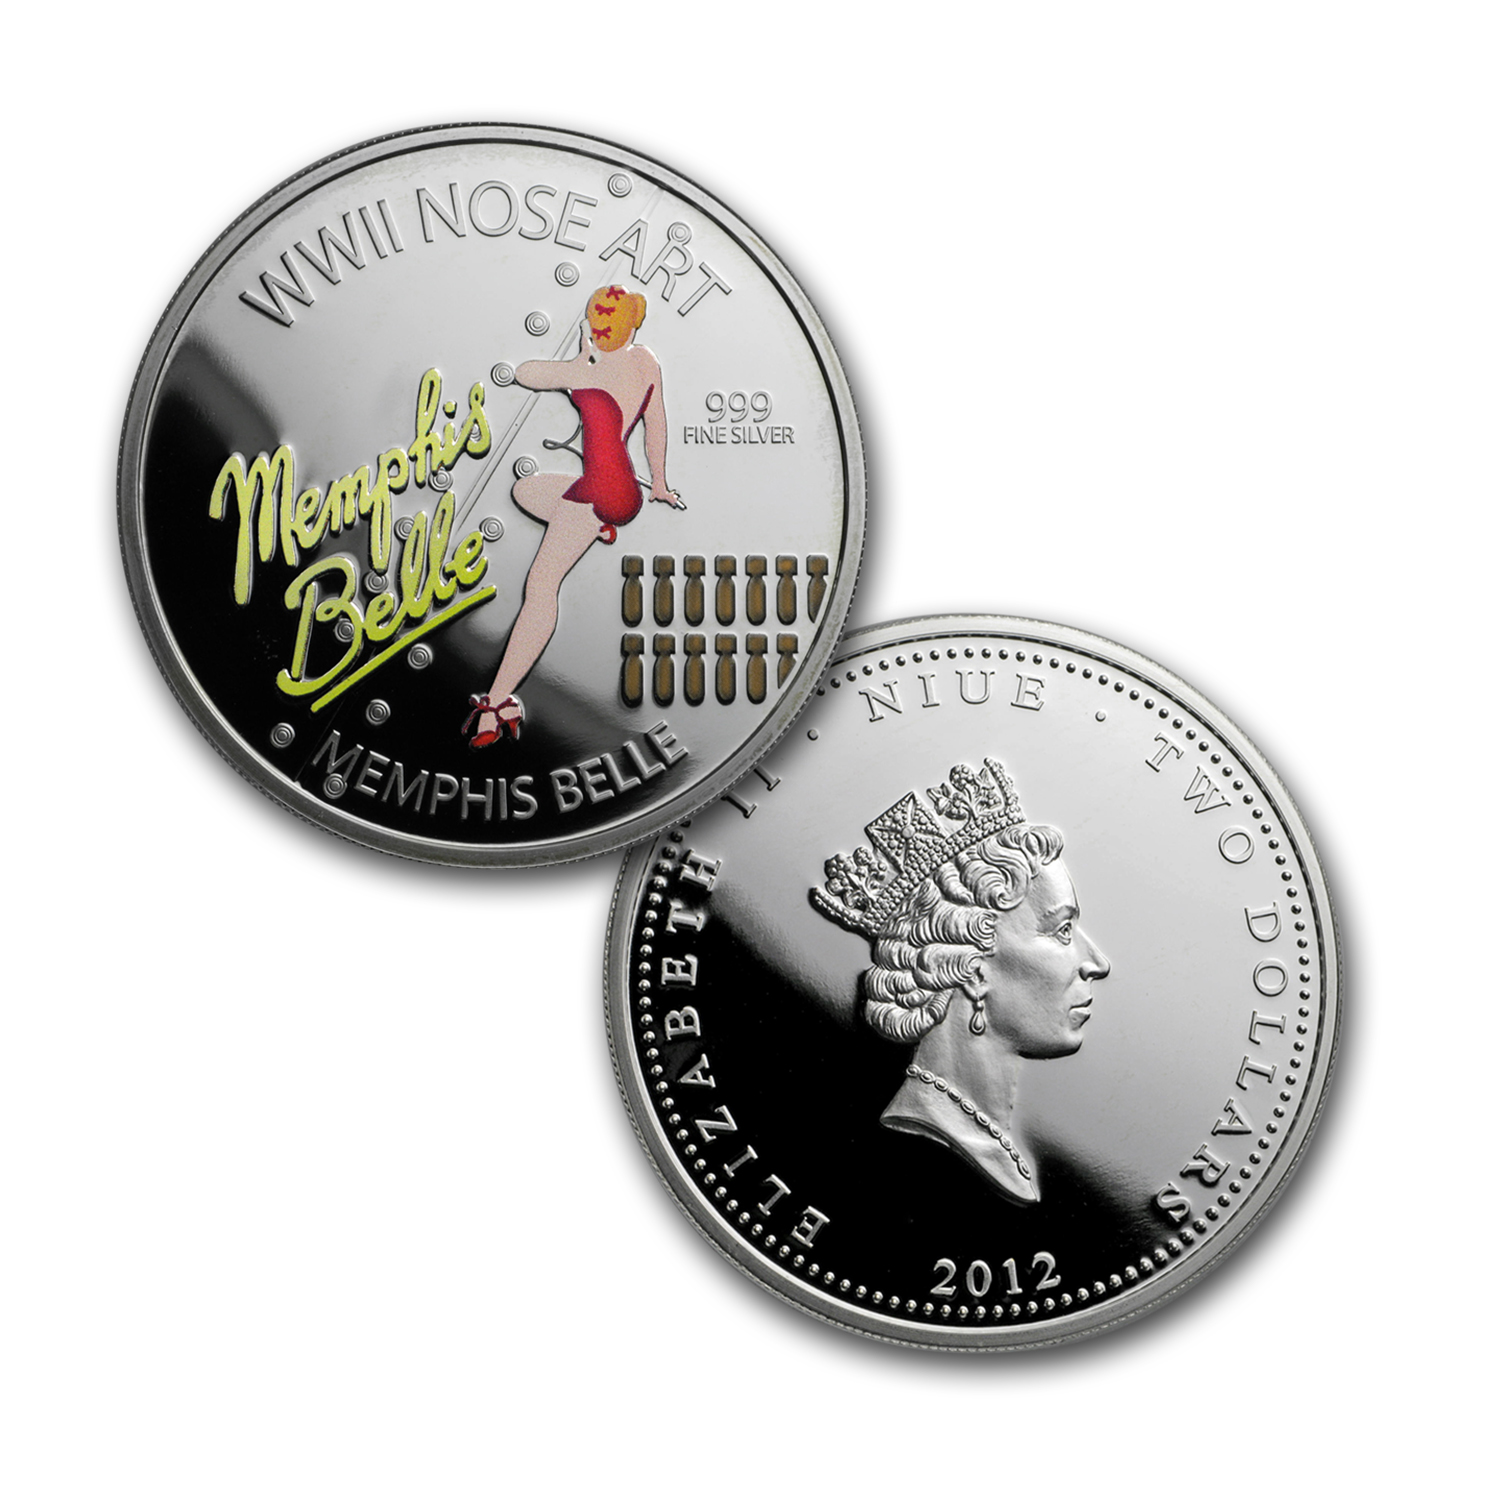 2012 WWII Nose Art - 3 x 1 oz Silver Collectible Coin Set